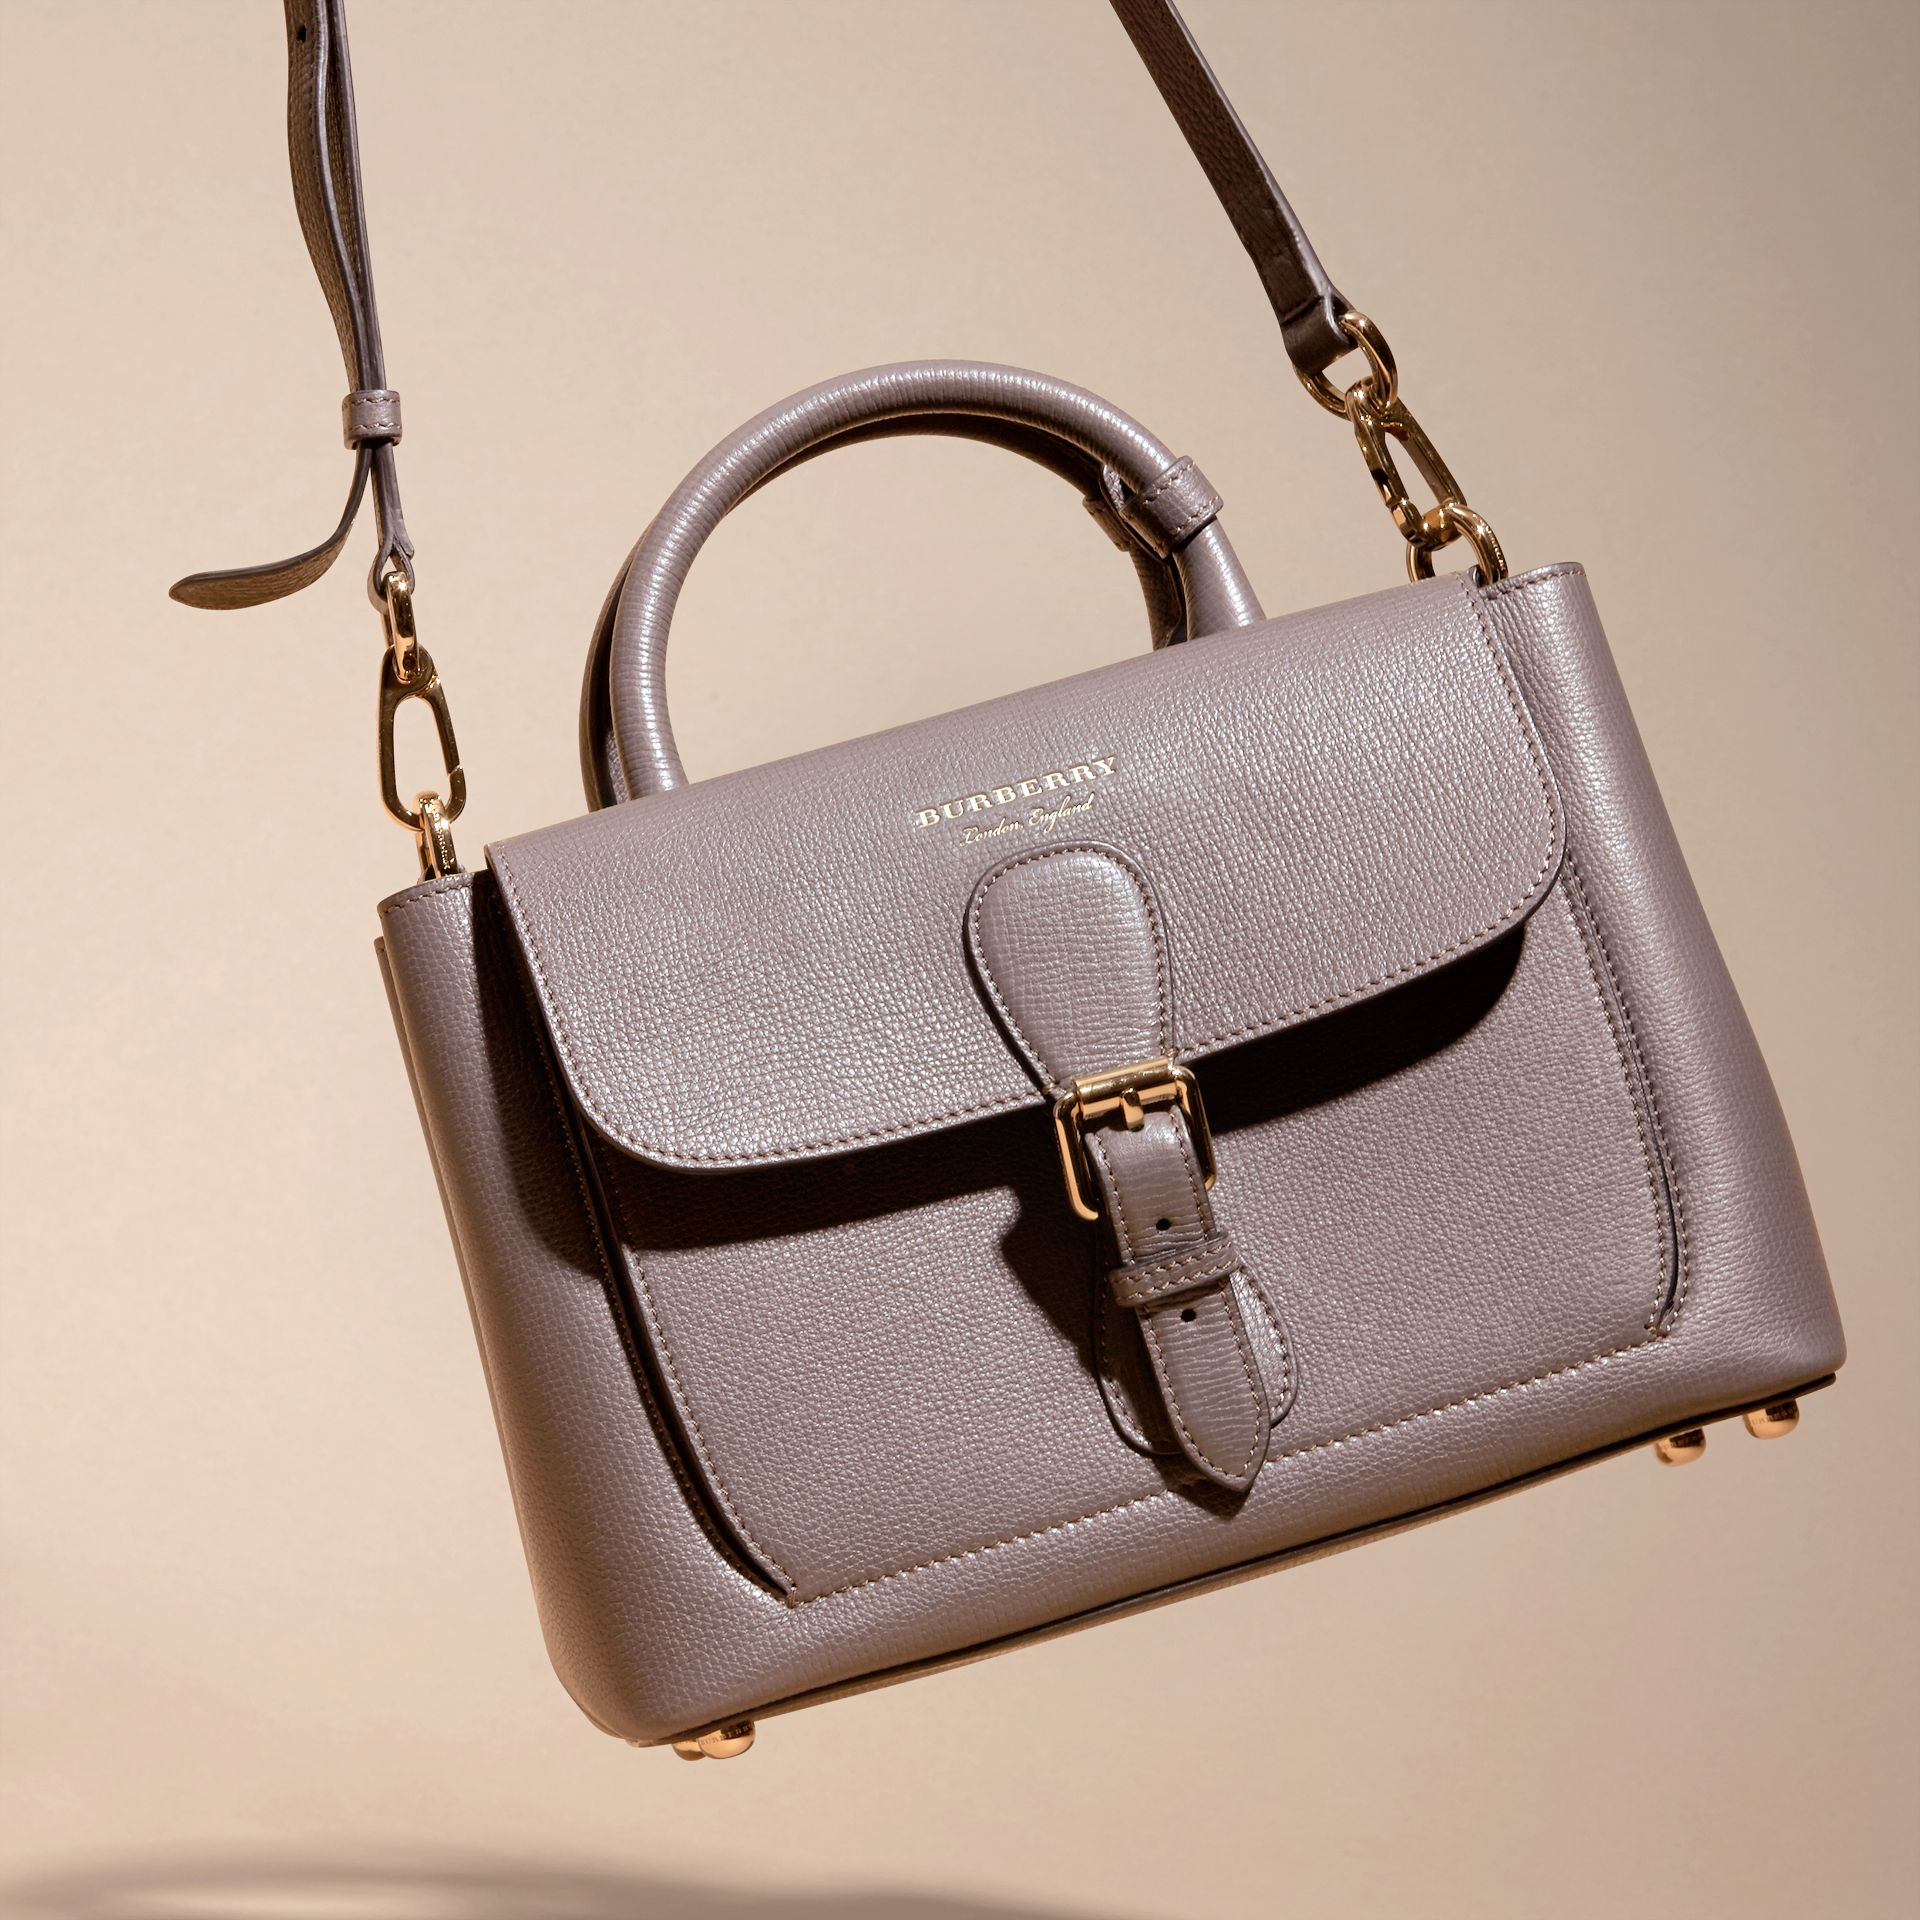 Sepia grey The Small Saddle Bag in Grainy Bonded Leather Sepia Grey - gallery image 7